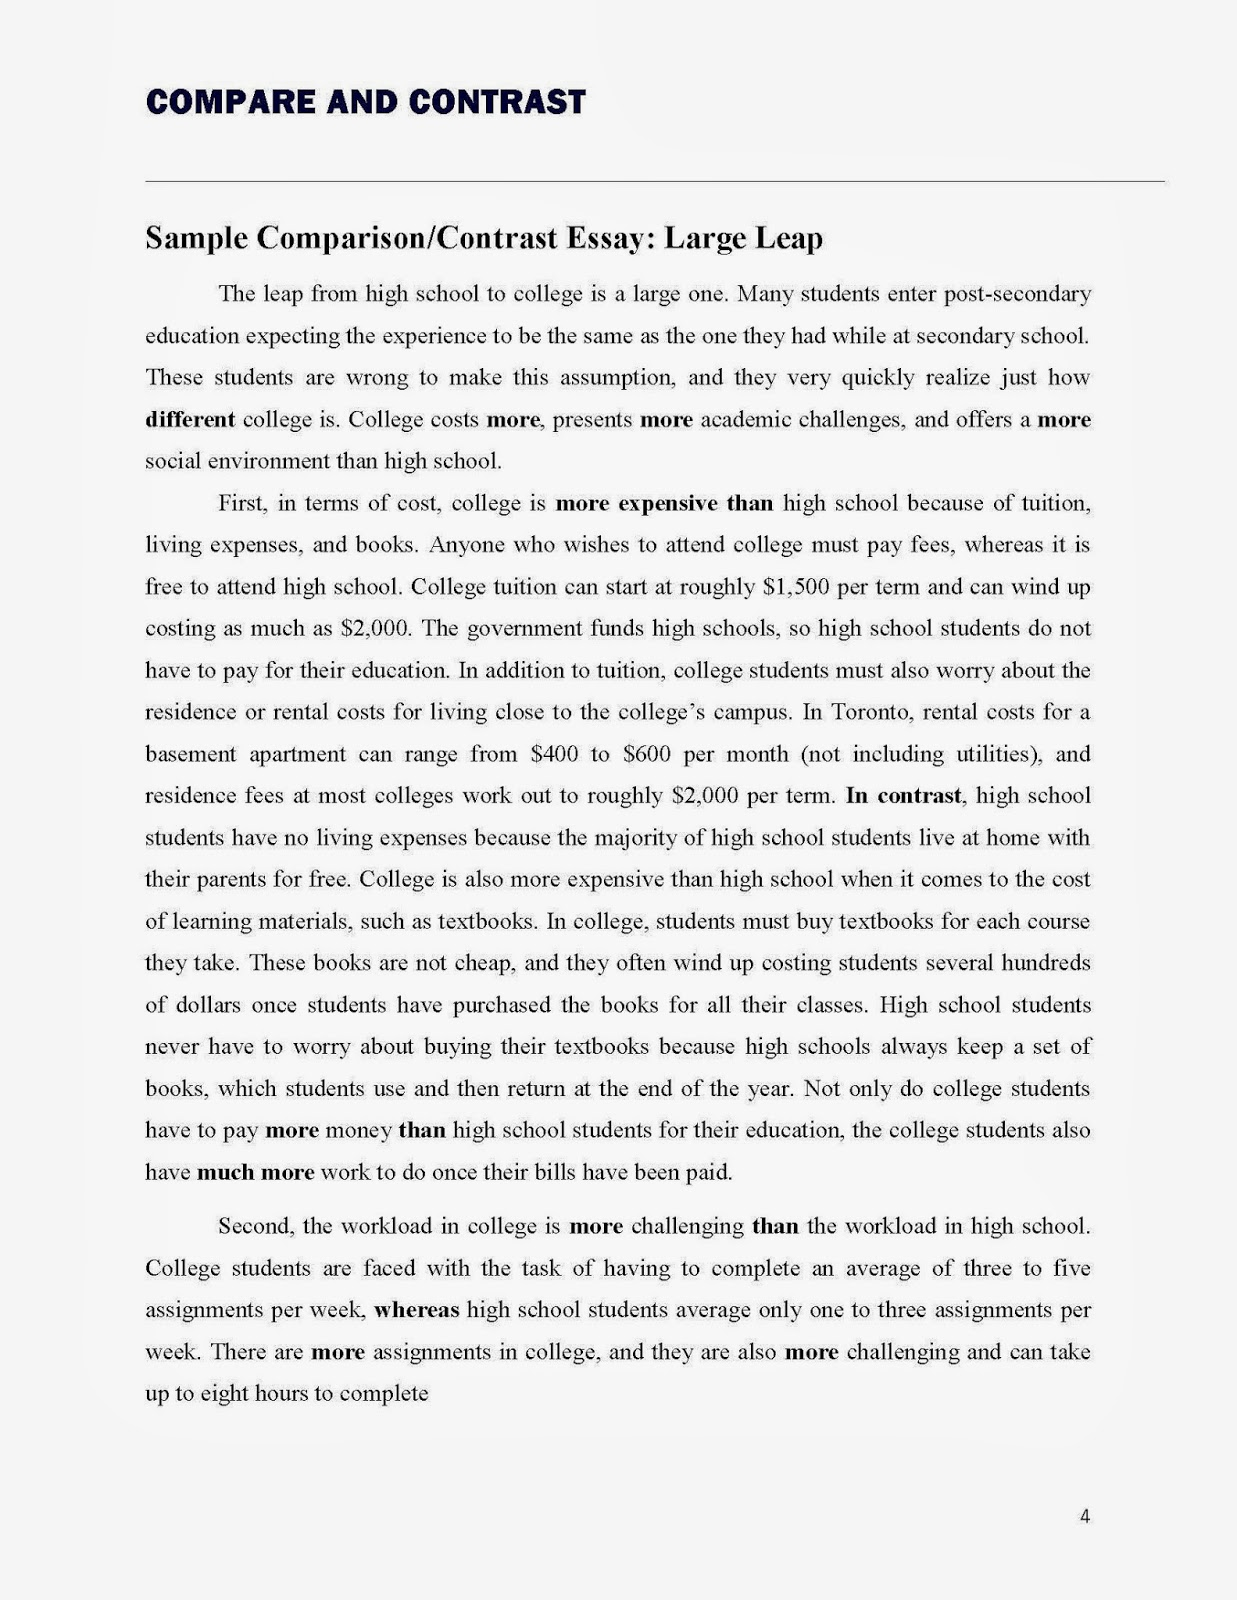 005 Contrast Essay Compareandcontrastessay Page 4h125 Fantastic Words Compare Outline Middle School Topics High Full